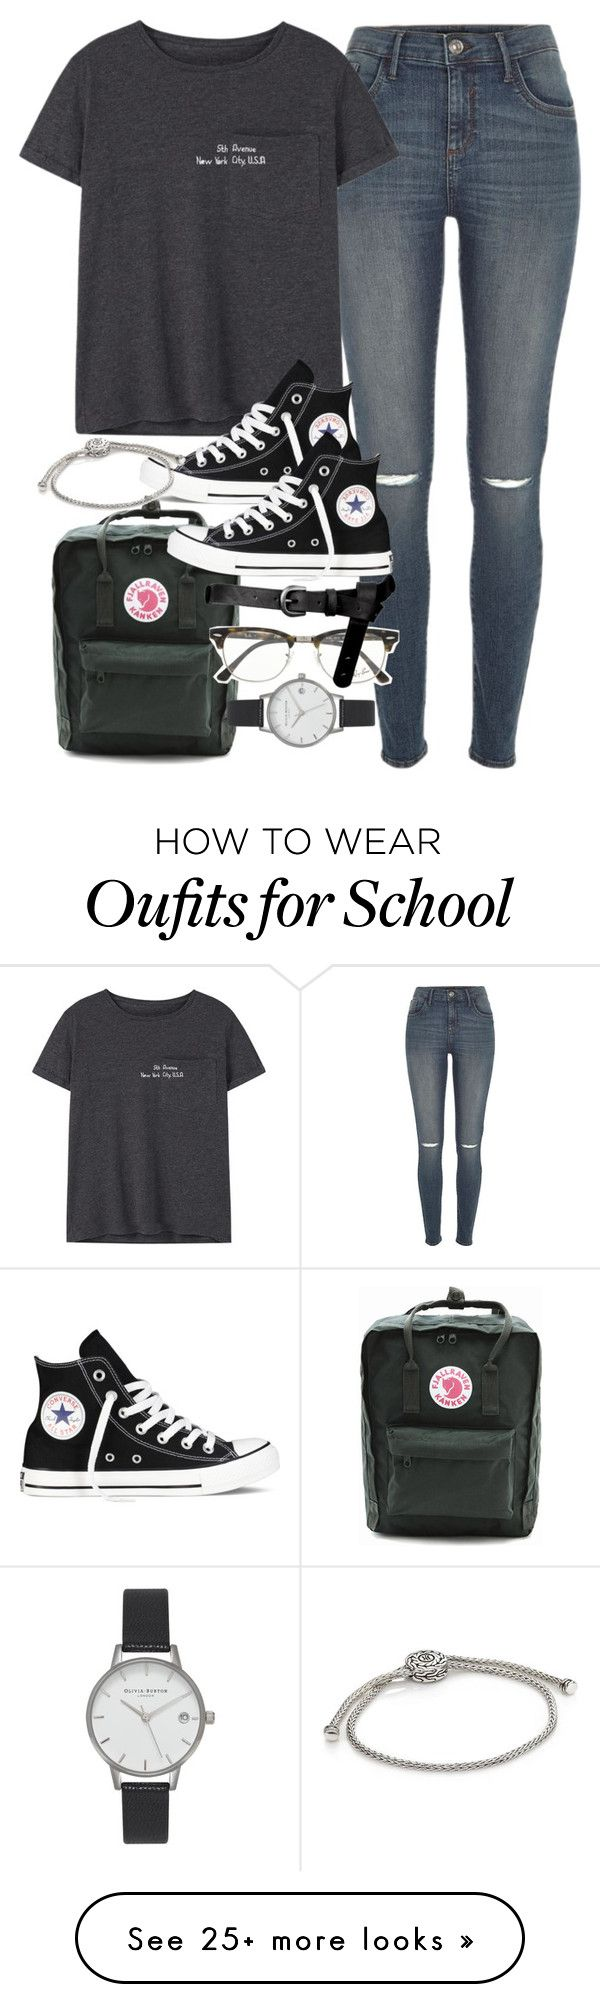 Outfit for school by ferned on Polyvore featuring River Island, MANGO, Fjällräven, Converse, John Hardy, Ray-Ban, ASOS and Olivia Burton